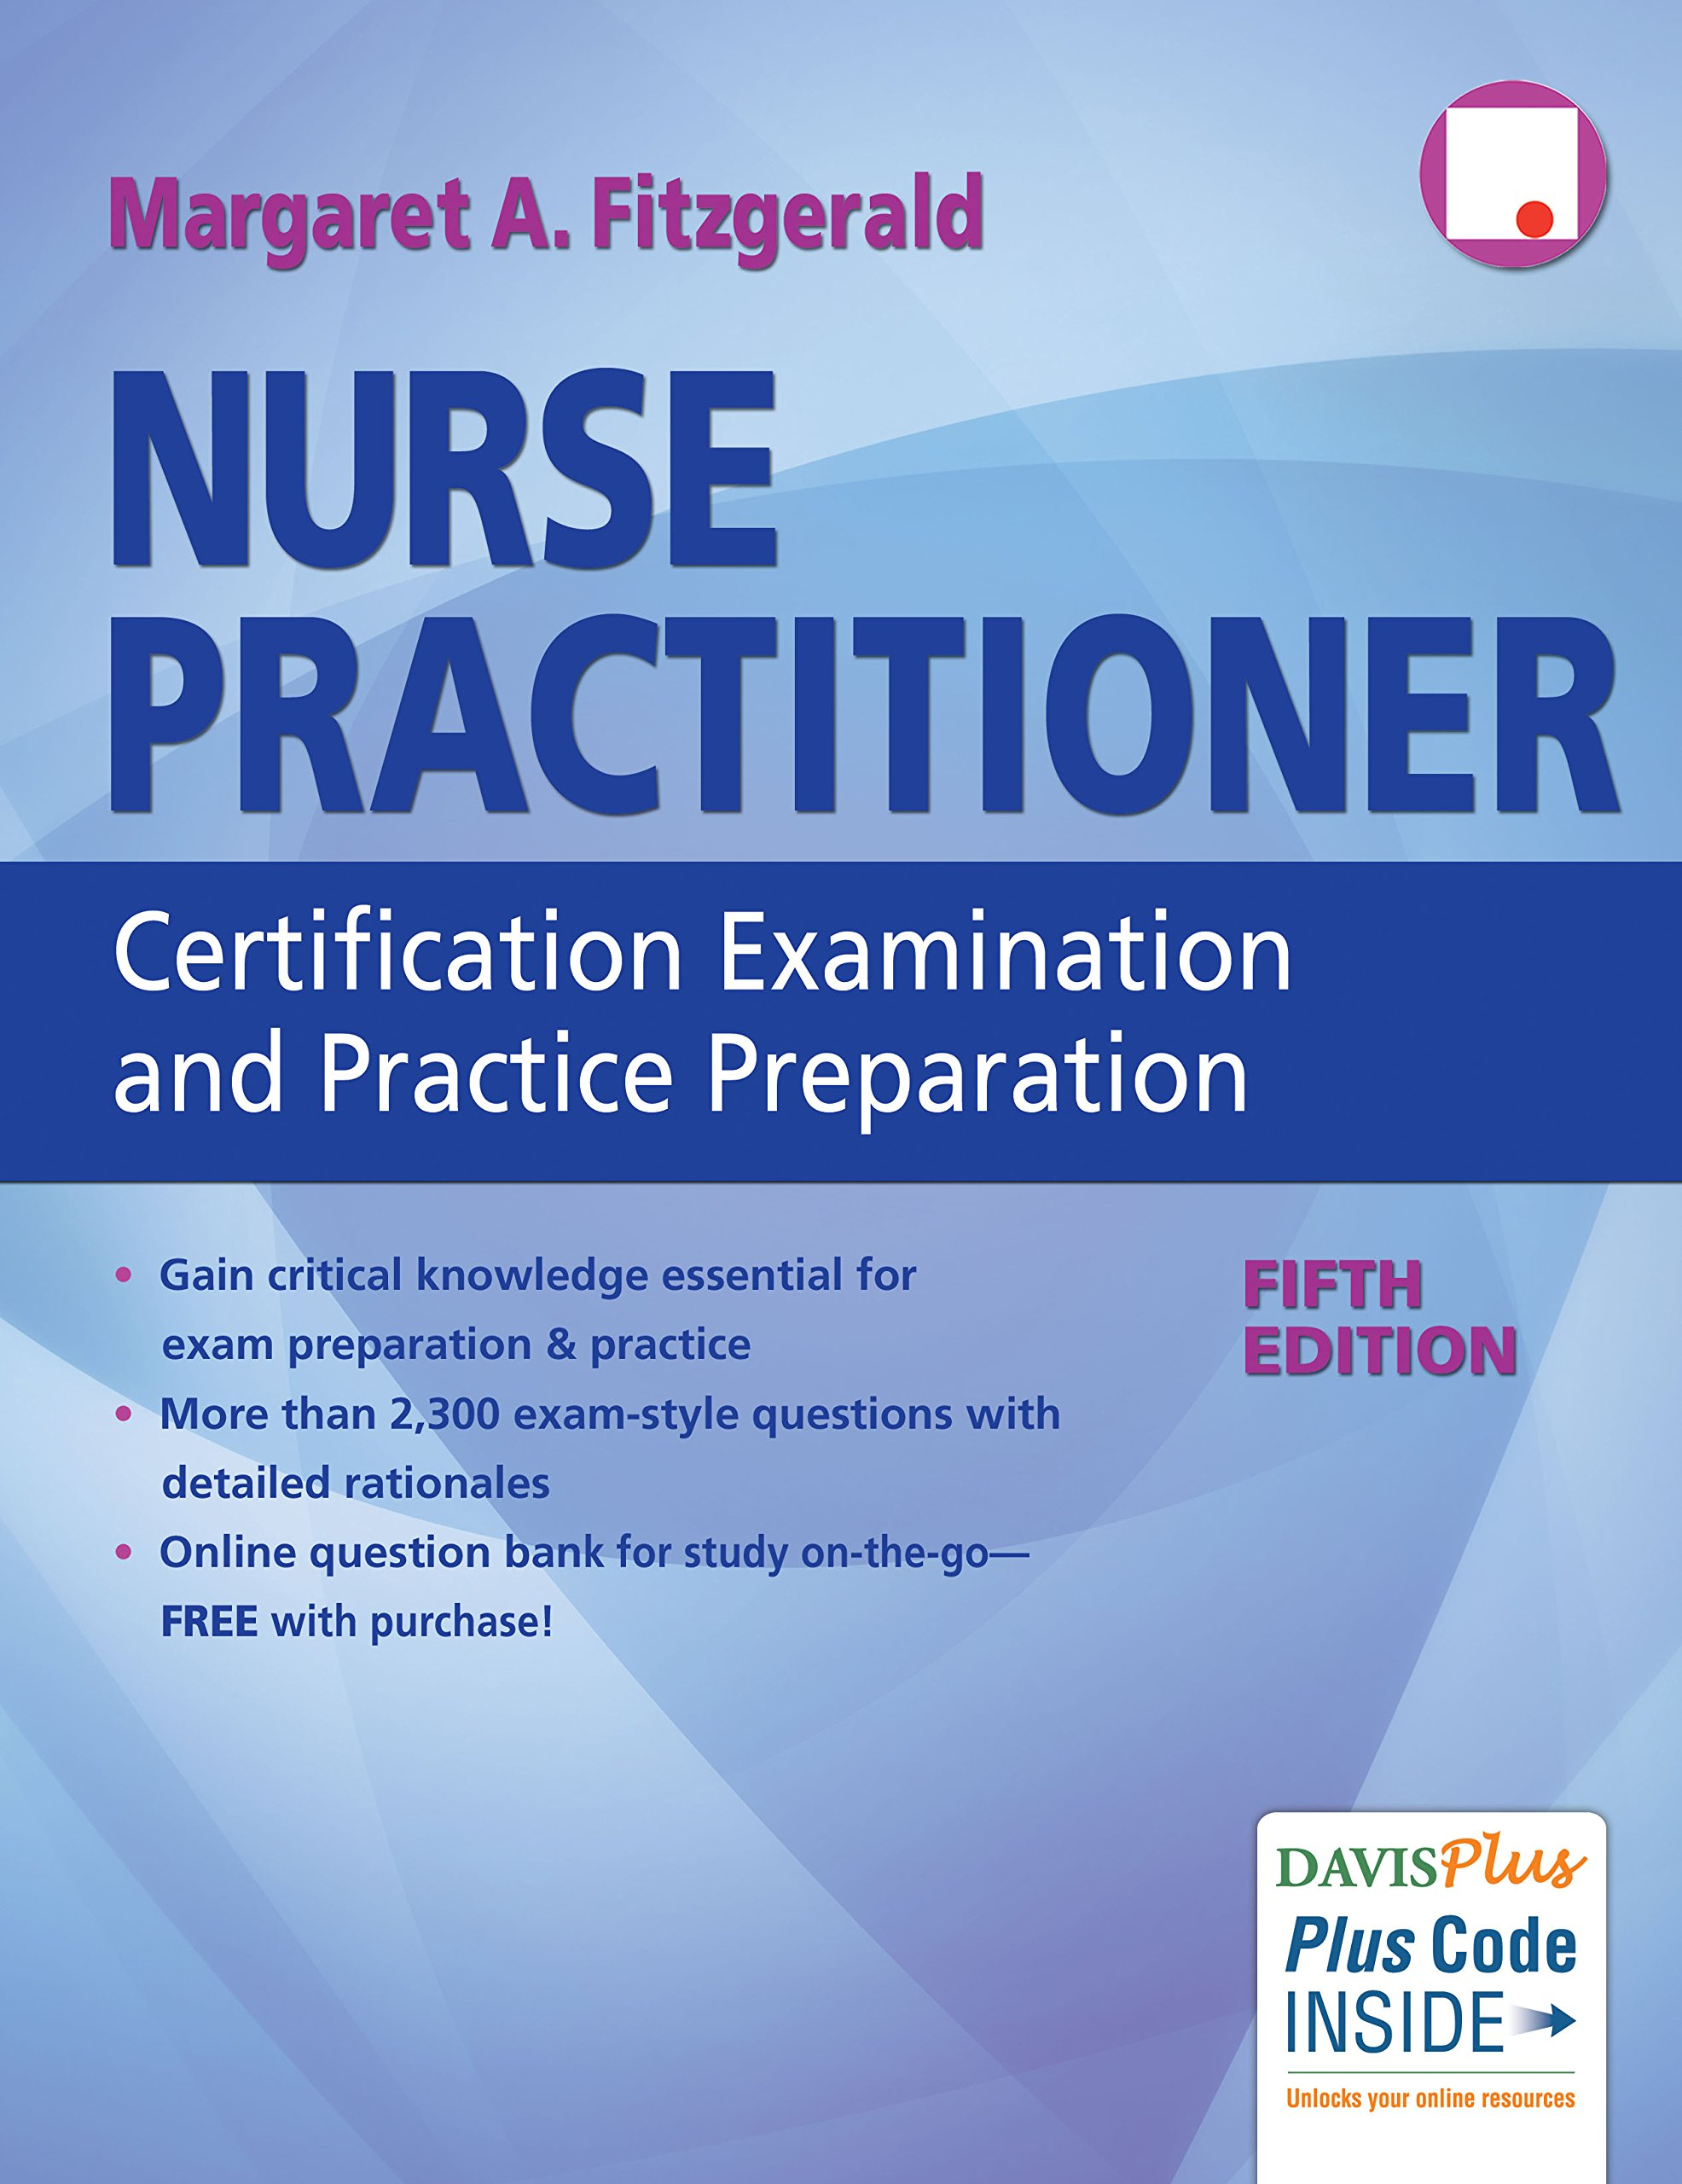 Nurse Practitioner Certification Examination and Practice Preparation by F.A. Davis Company